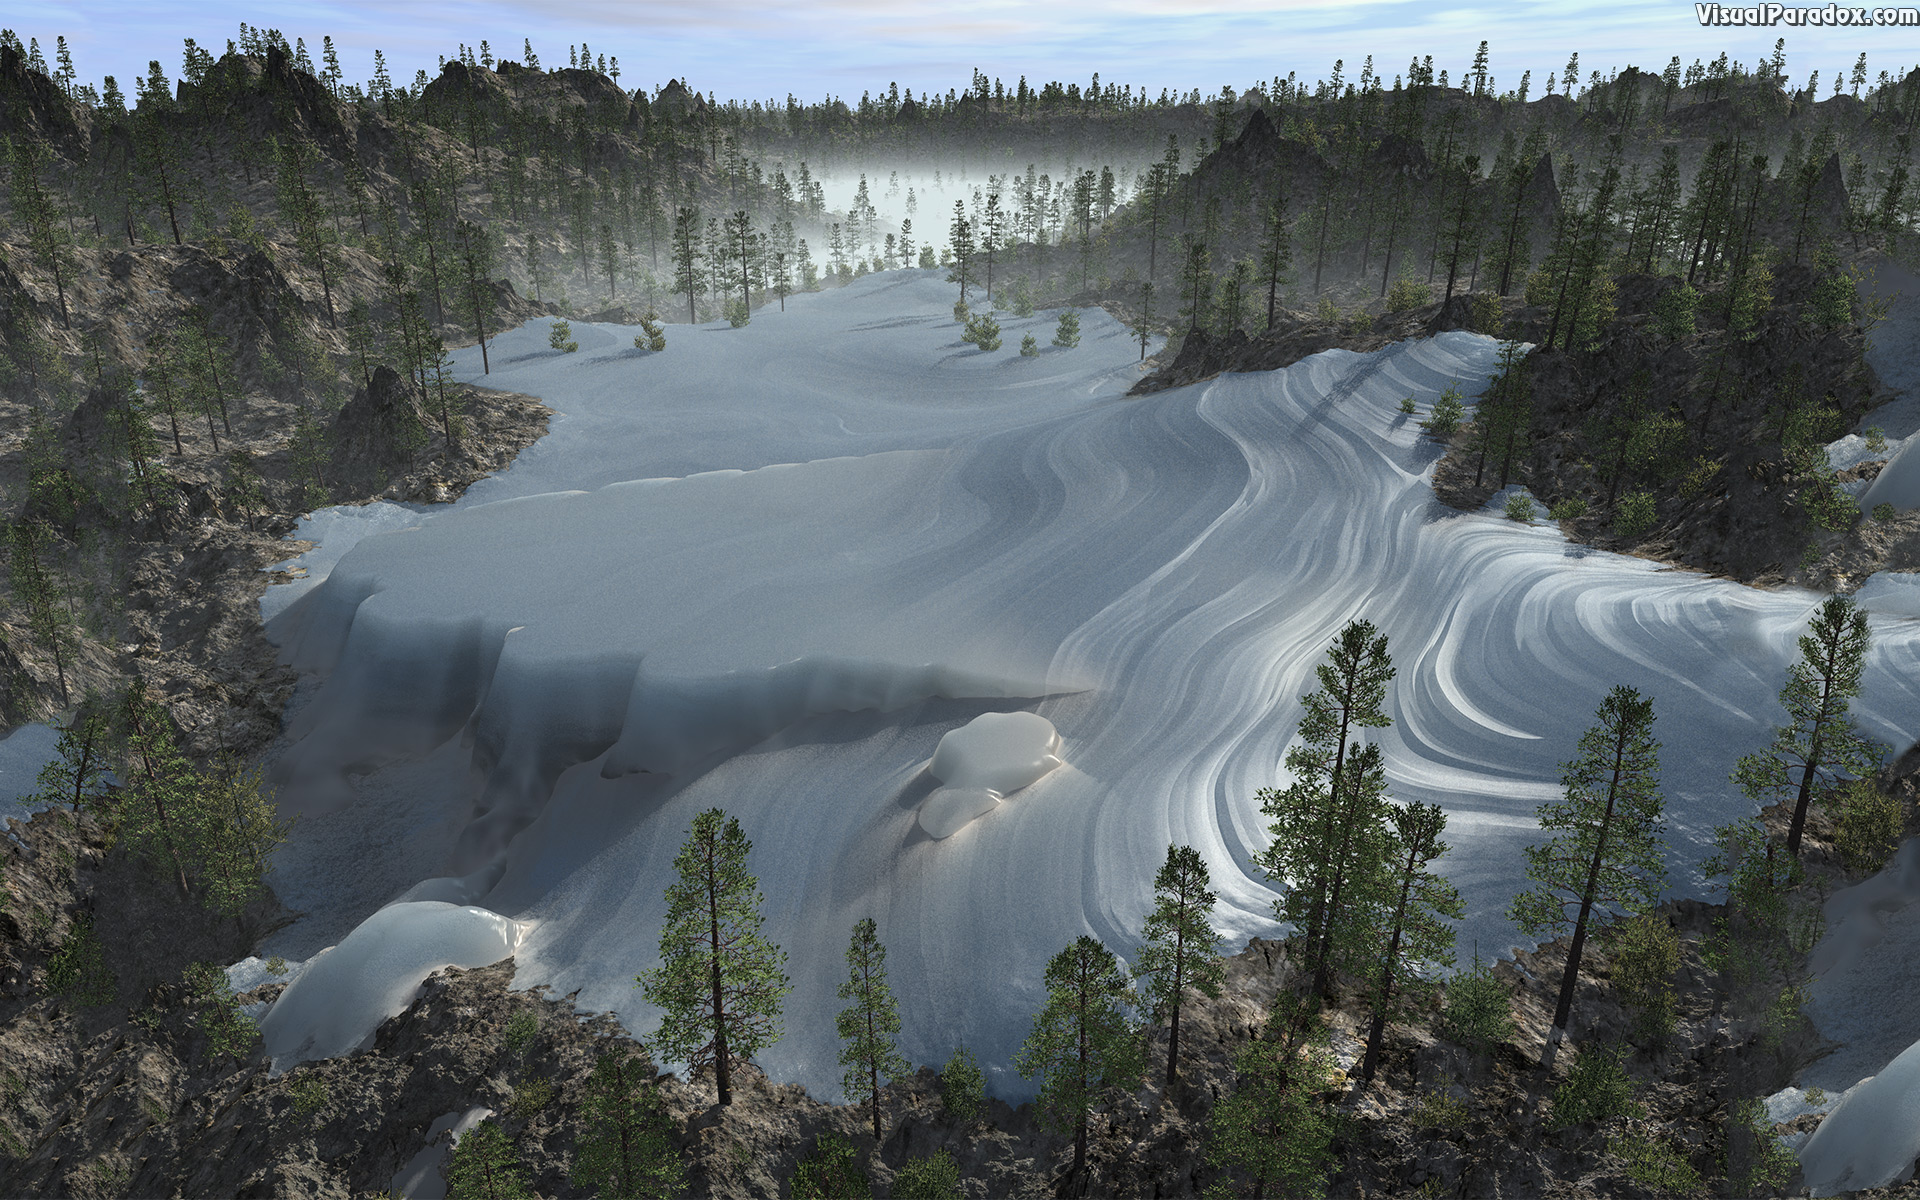 ice, pack, snow, glacier, tundra, permafrost, cold, arctic, 3d, wallpaper